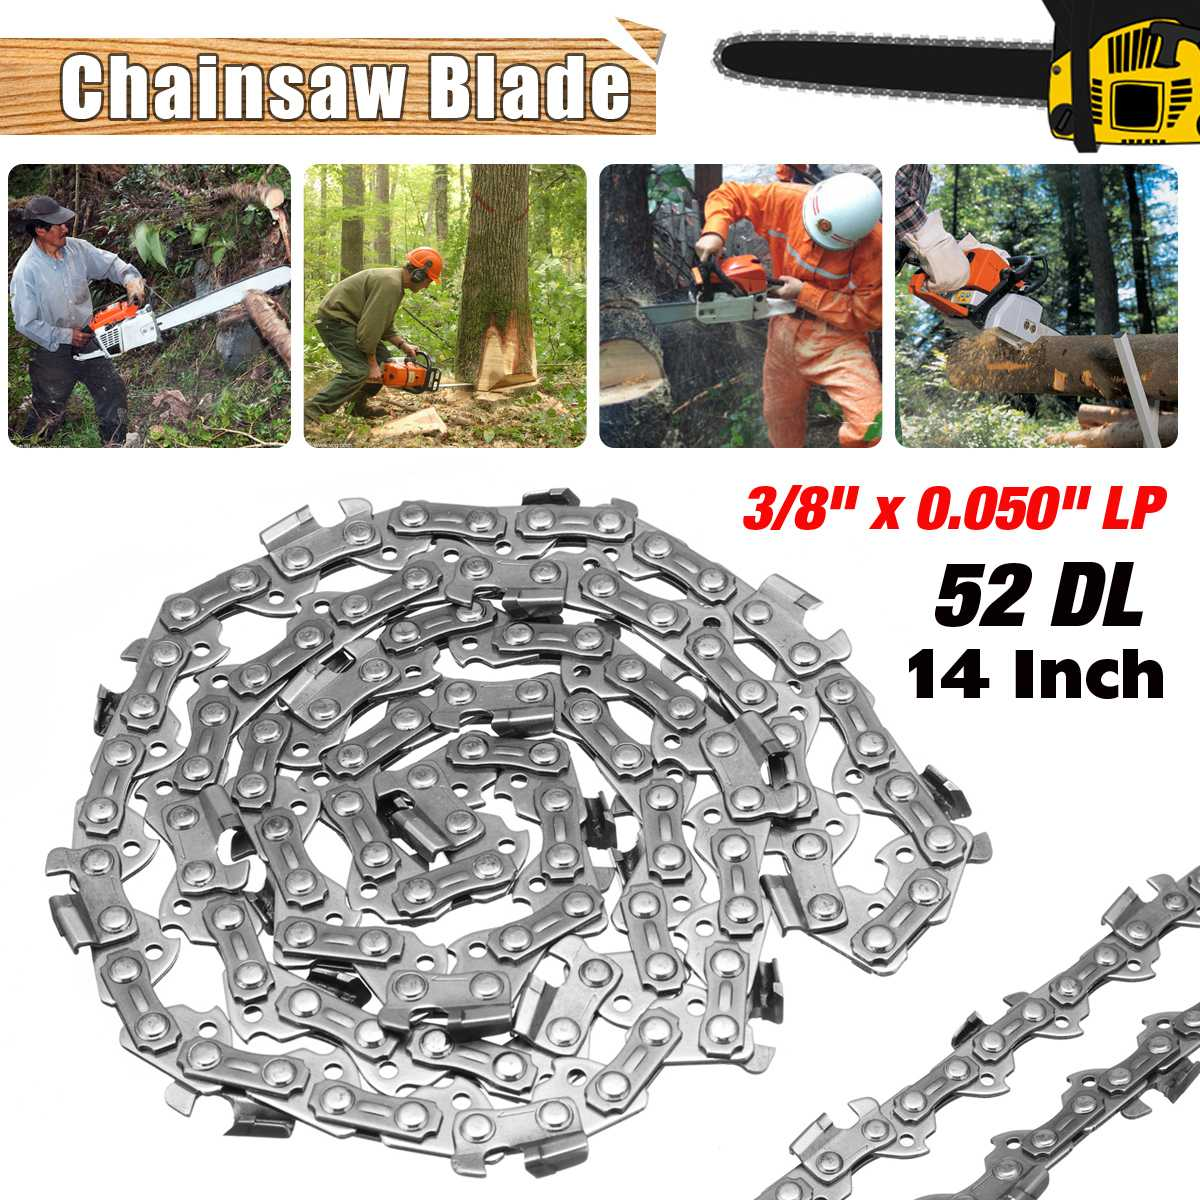 New 14 inch Garden Chain Saws Alloy Solid Carbide Chainsaw Chain 52 Link Bar 3/8 x 0.050 LP Power Tool parts 18 inch chainsaw chain 68 link bar 1 6mm x 0 325 lp garden chains saws alloy power tool parts